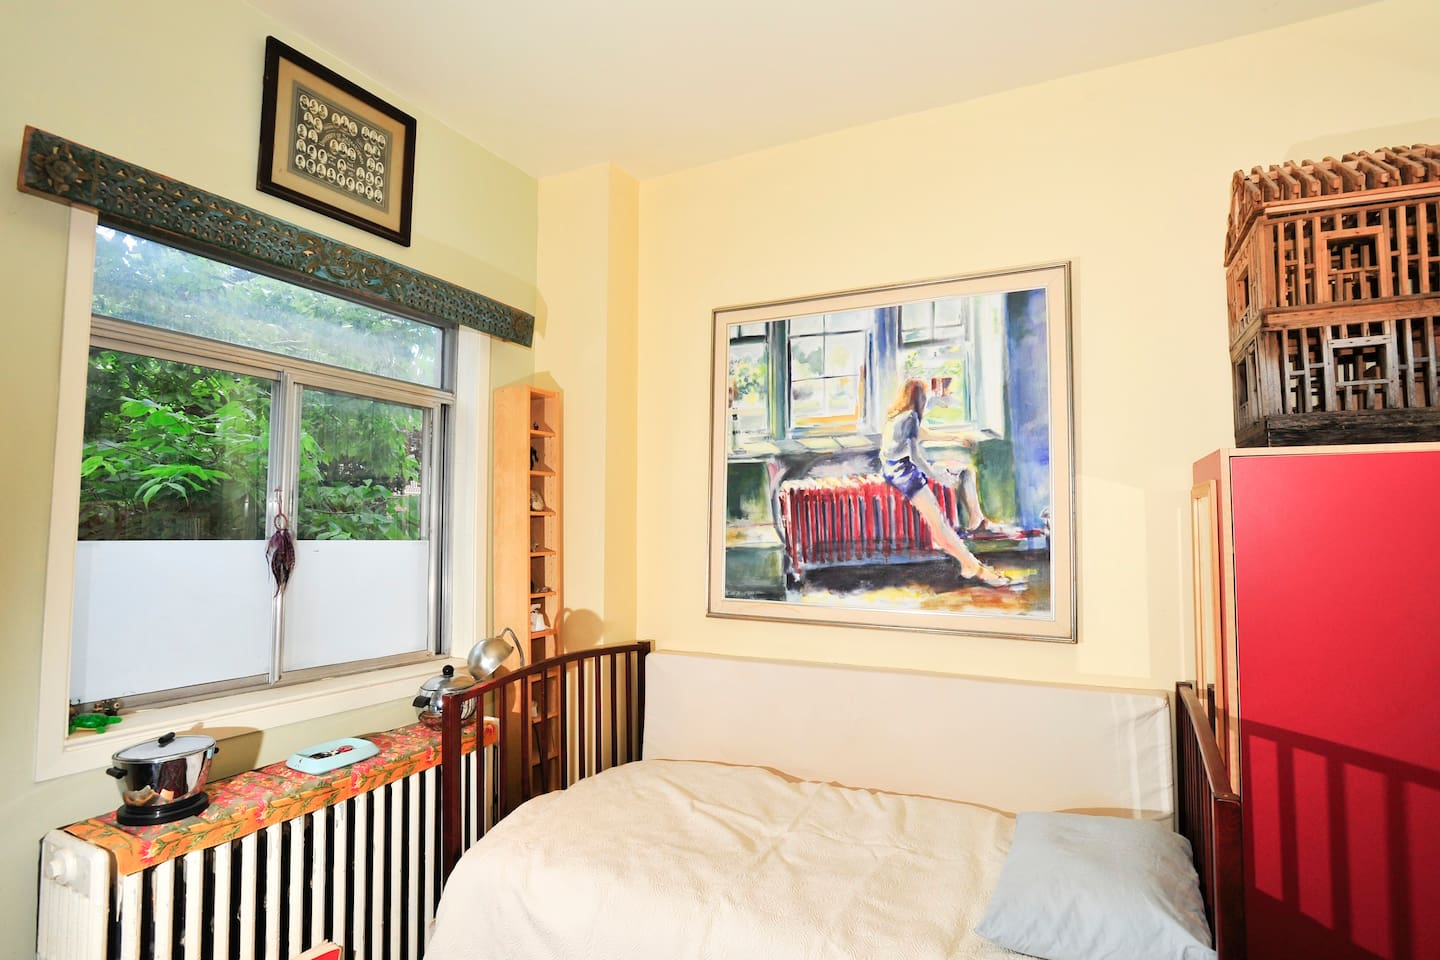 Serene room with trees outside the window and surrounded by art.